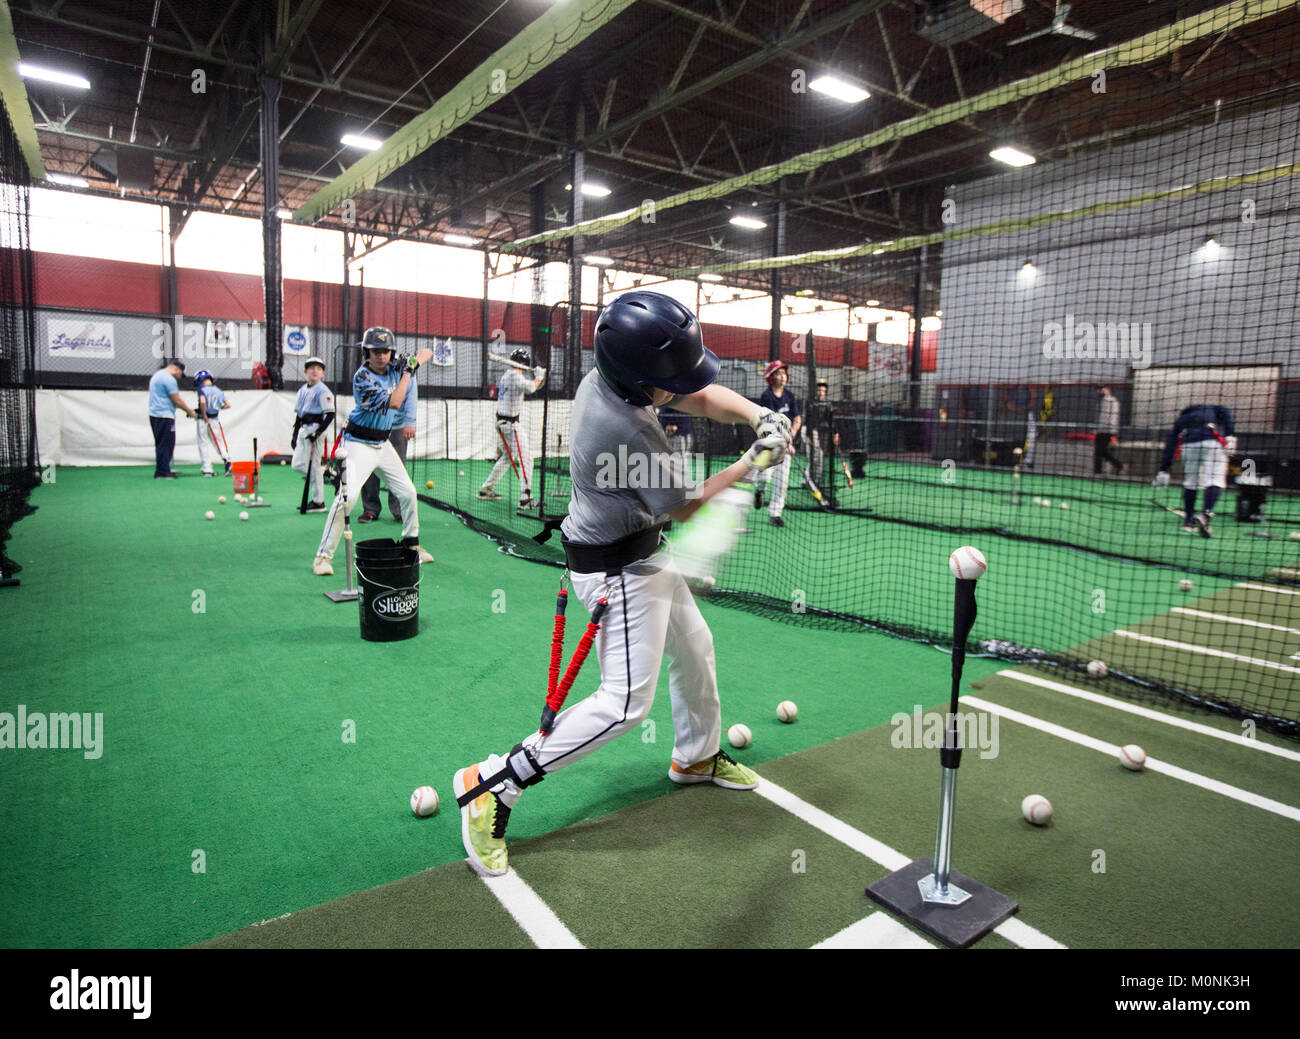 Batters hitting off a tee at a baseball training facility in New Jersey. - Stock Image